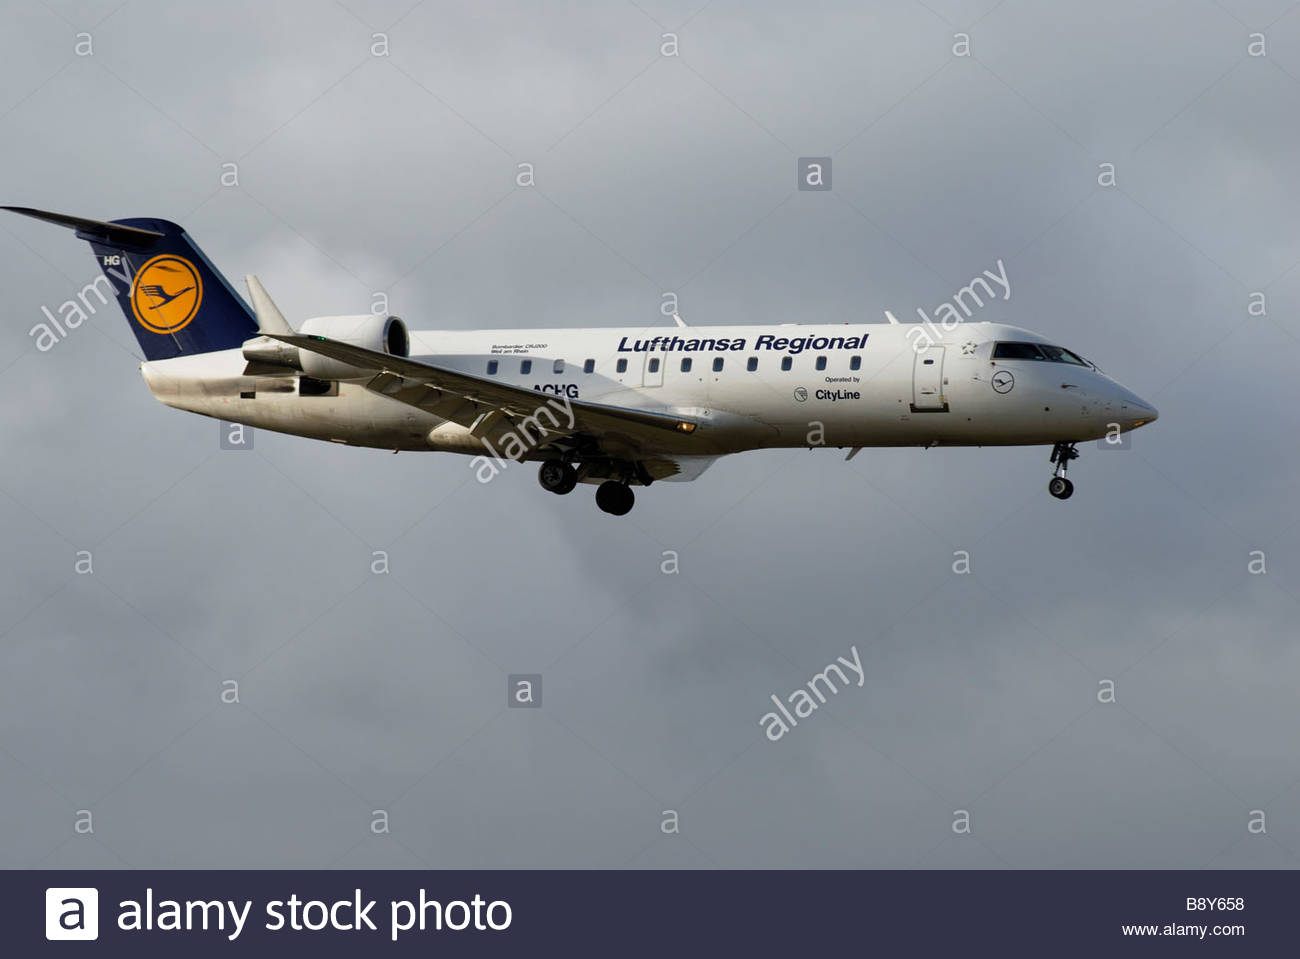 Schiphol The Netherlands Lufthansa Cityline D ACHG Canadair Regional Jet coming into land - Stock Image